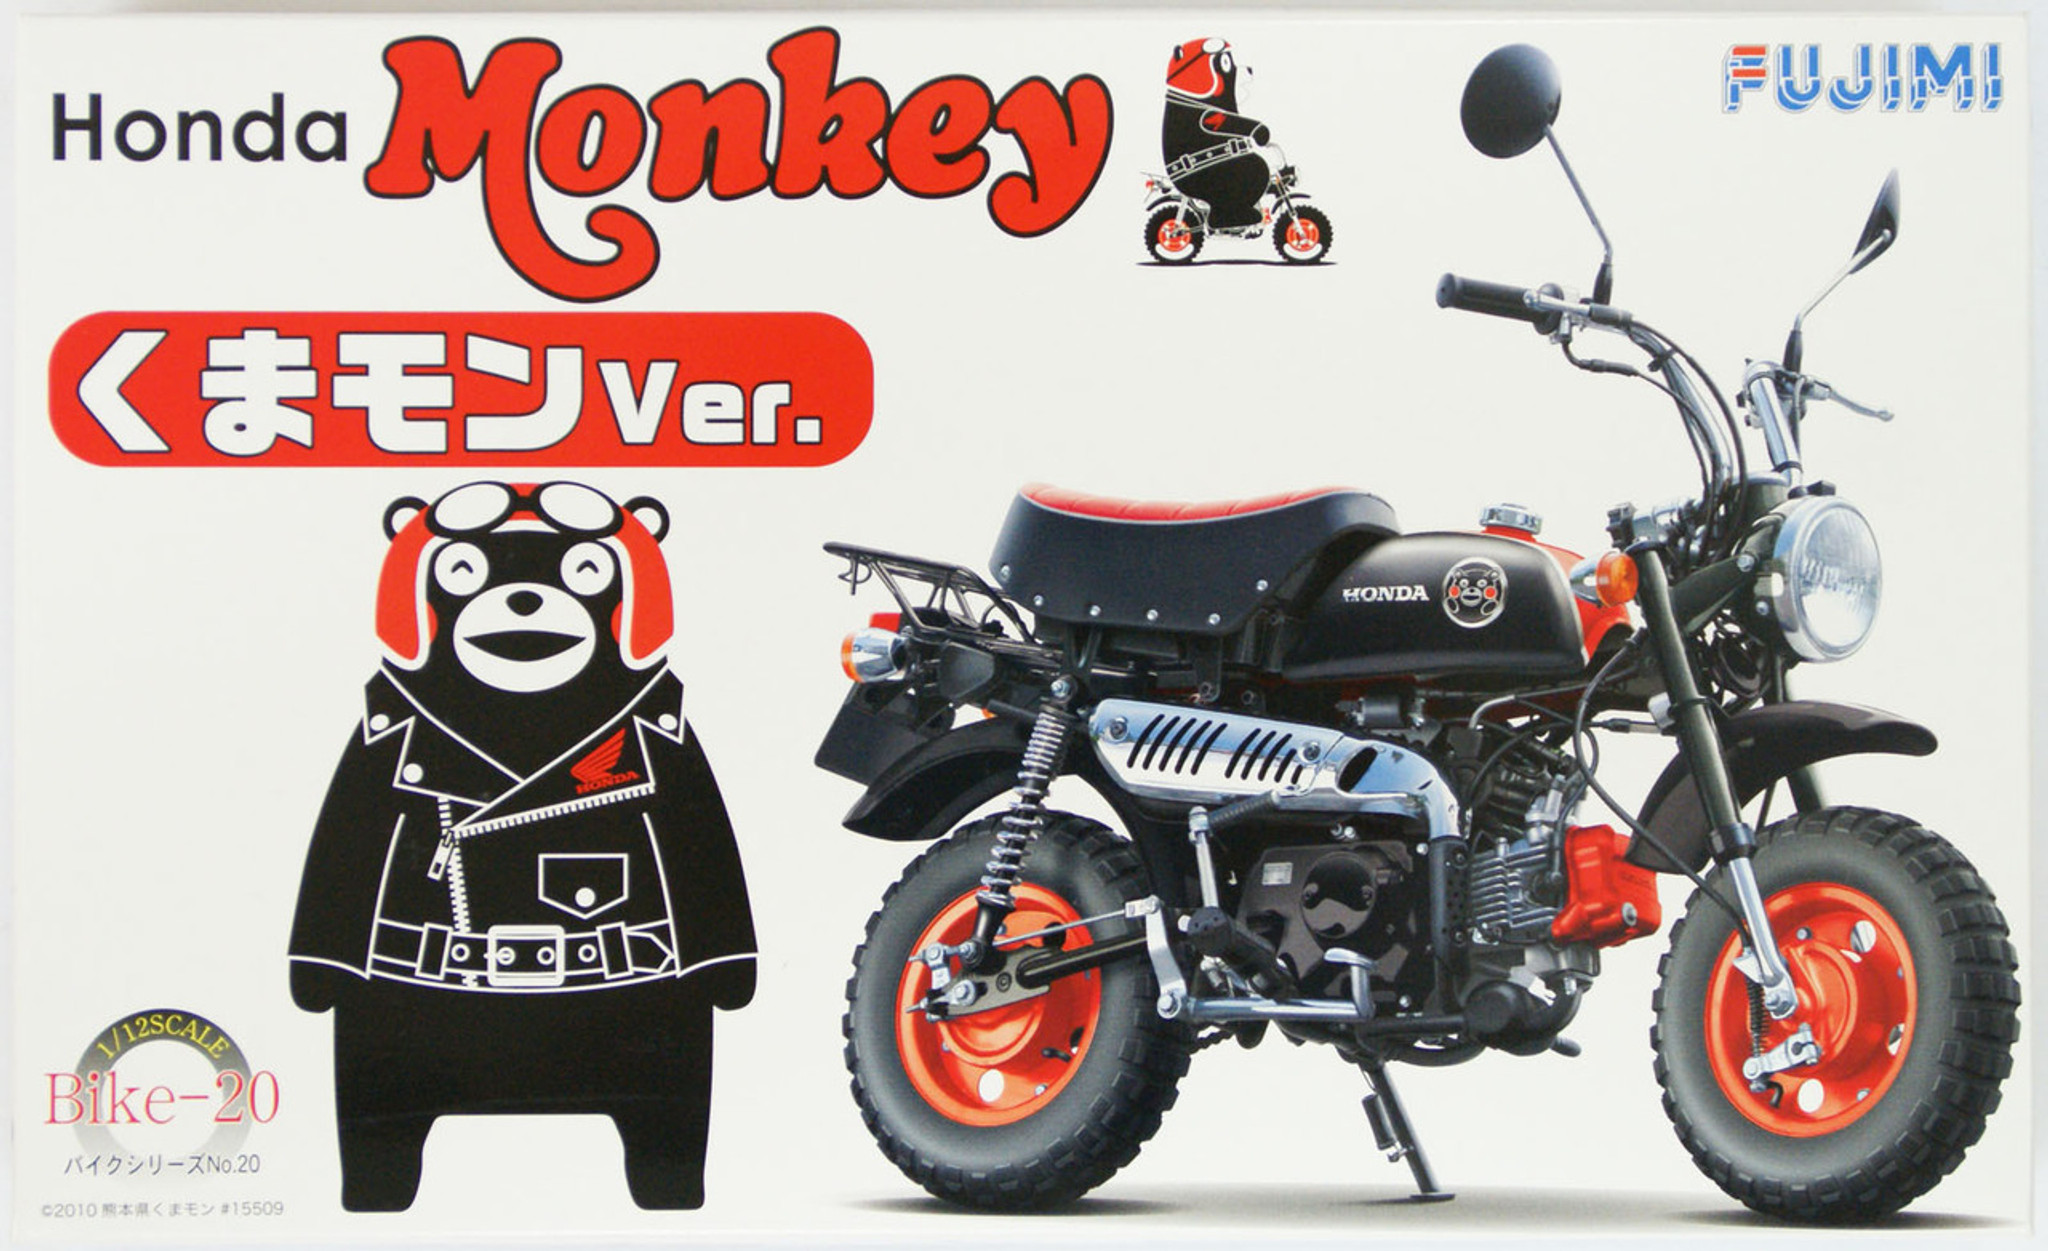 fujimi bike-20 honda monkey kumamon version 1/12 scale kit - plaza